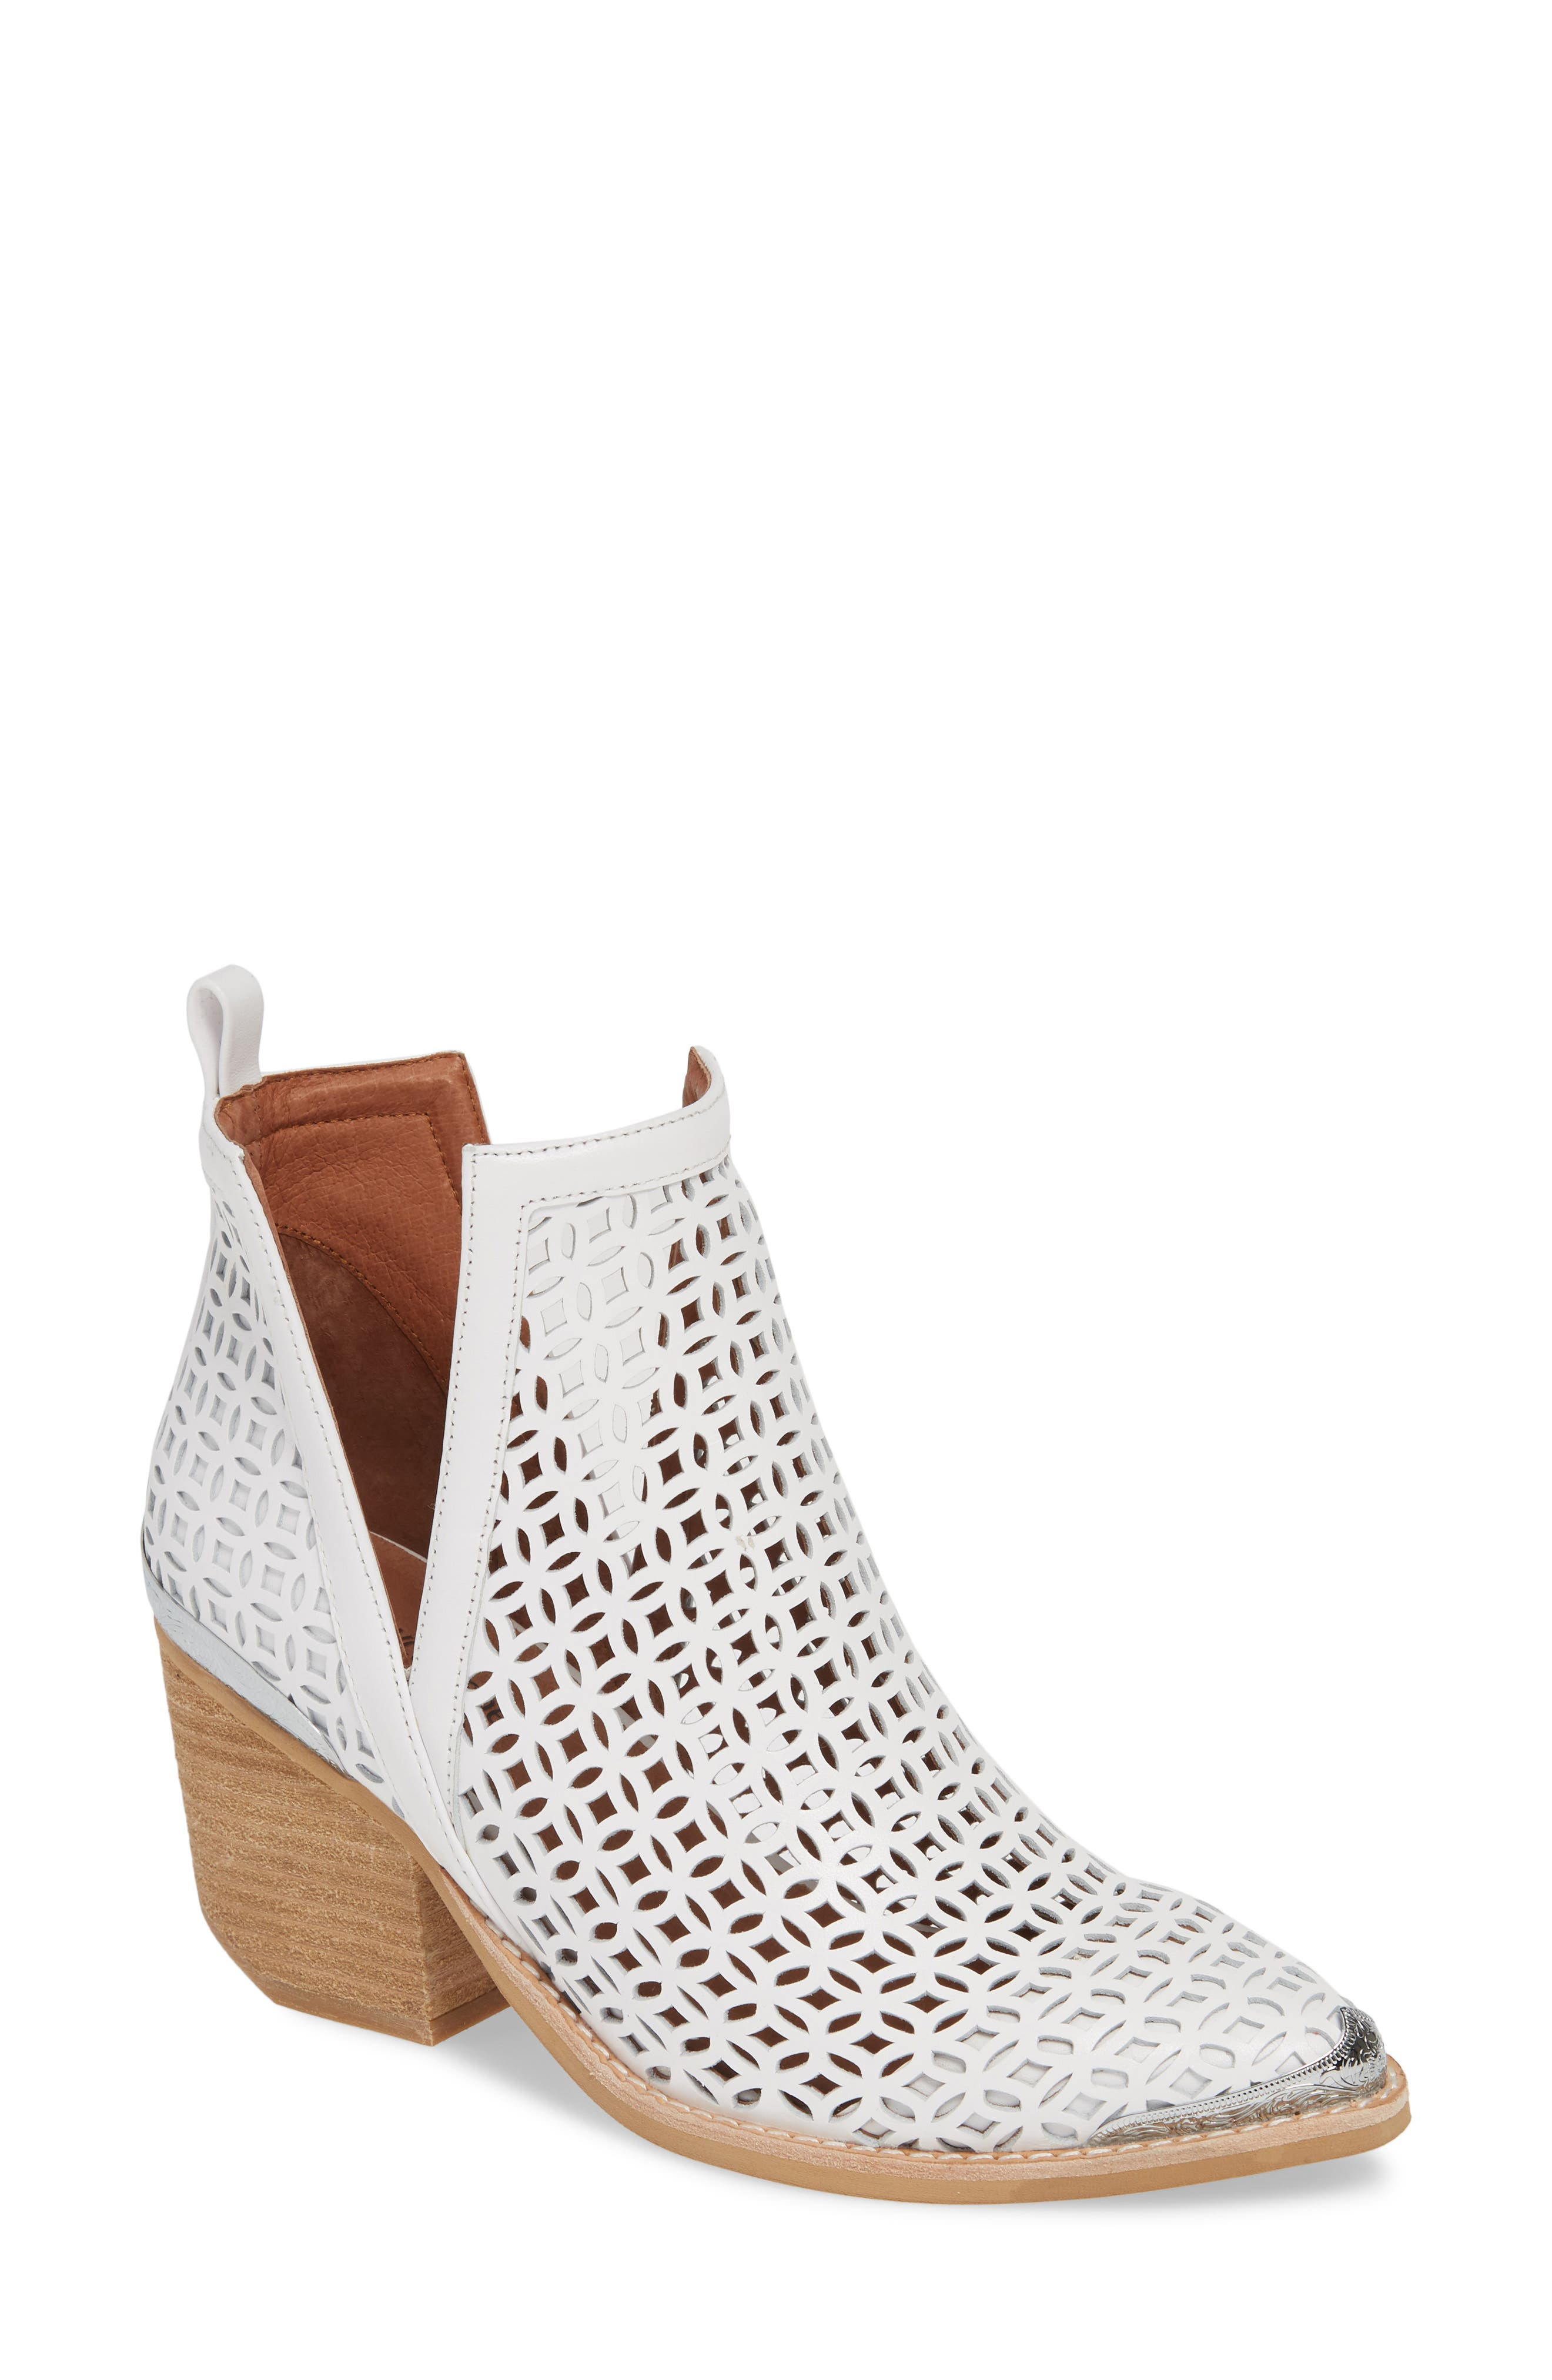 Jeffrey Campbell Cromwell-C2 Perforated Bootie, White